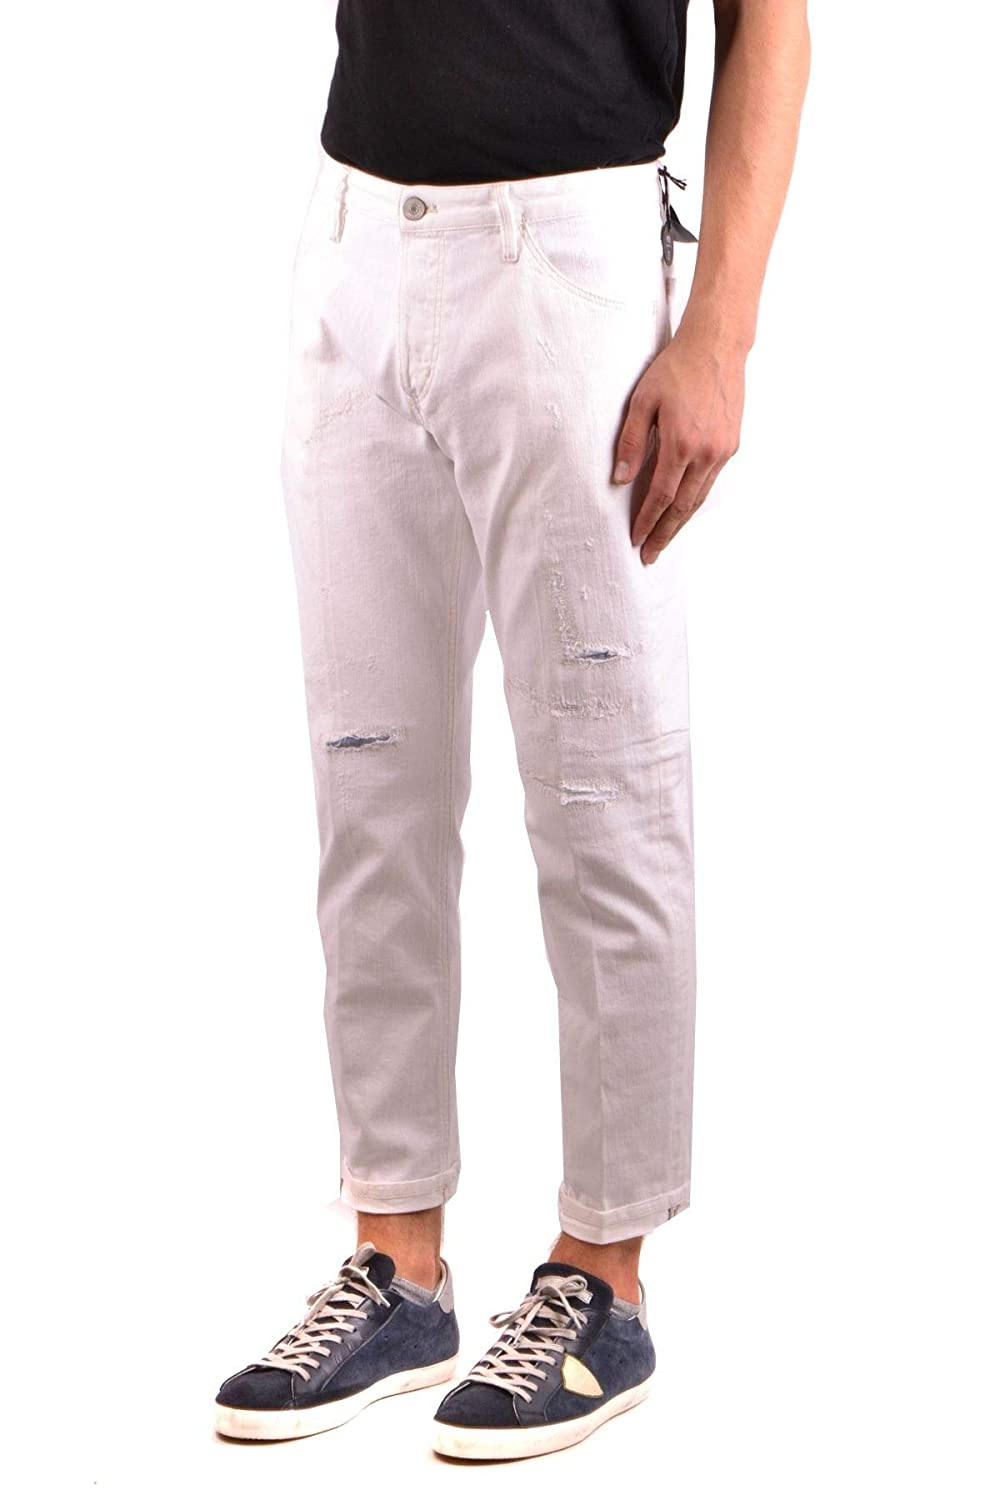 PT05 Mens MCBI35627 White Cotton Jeans